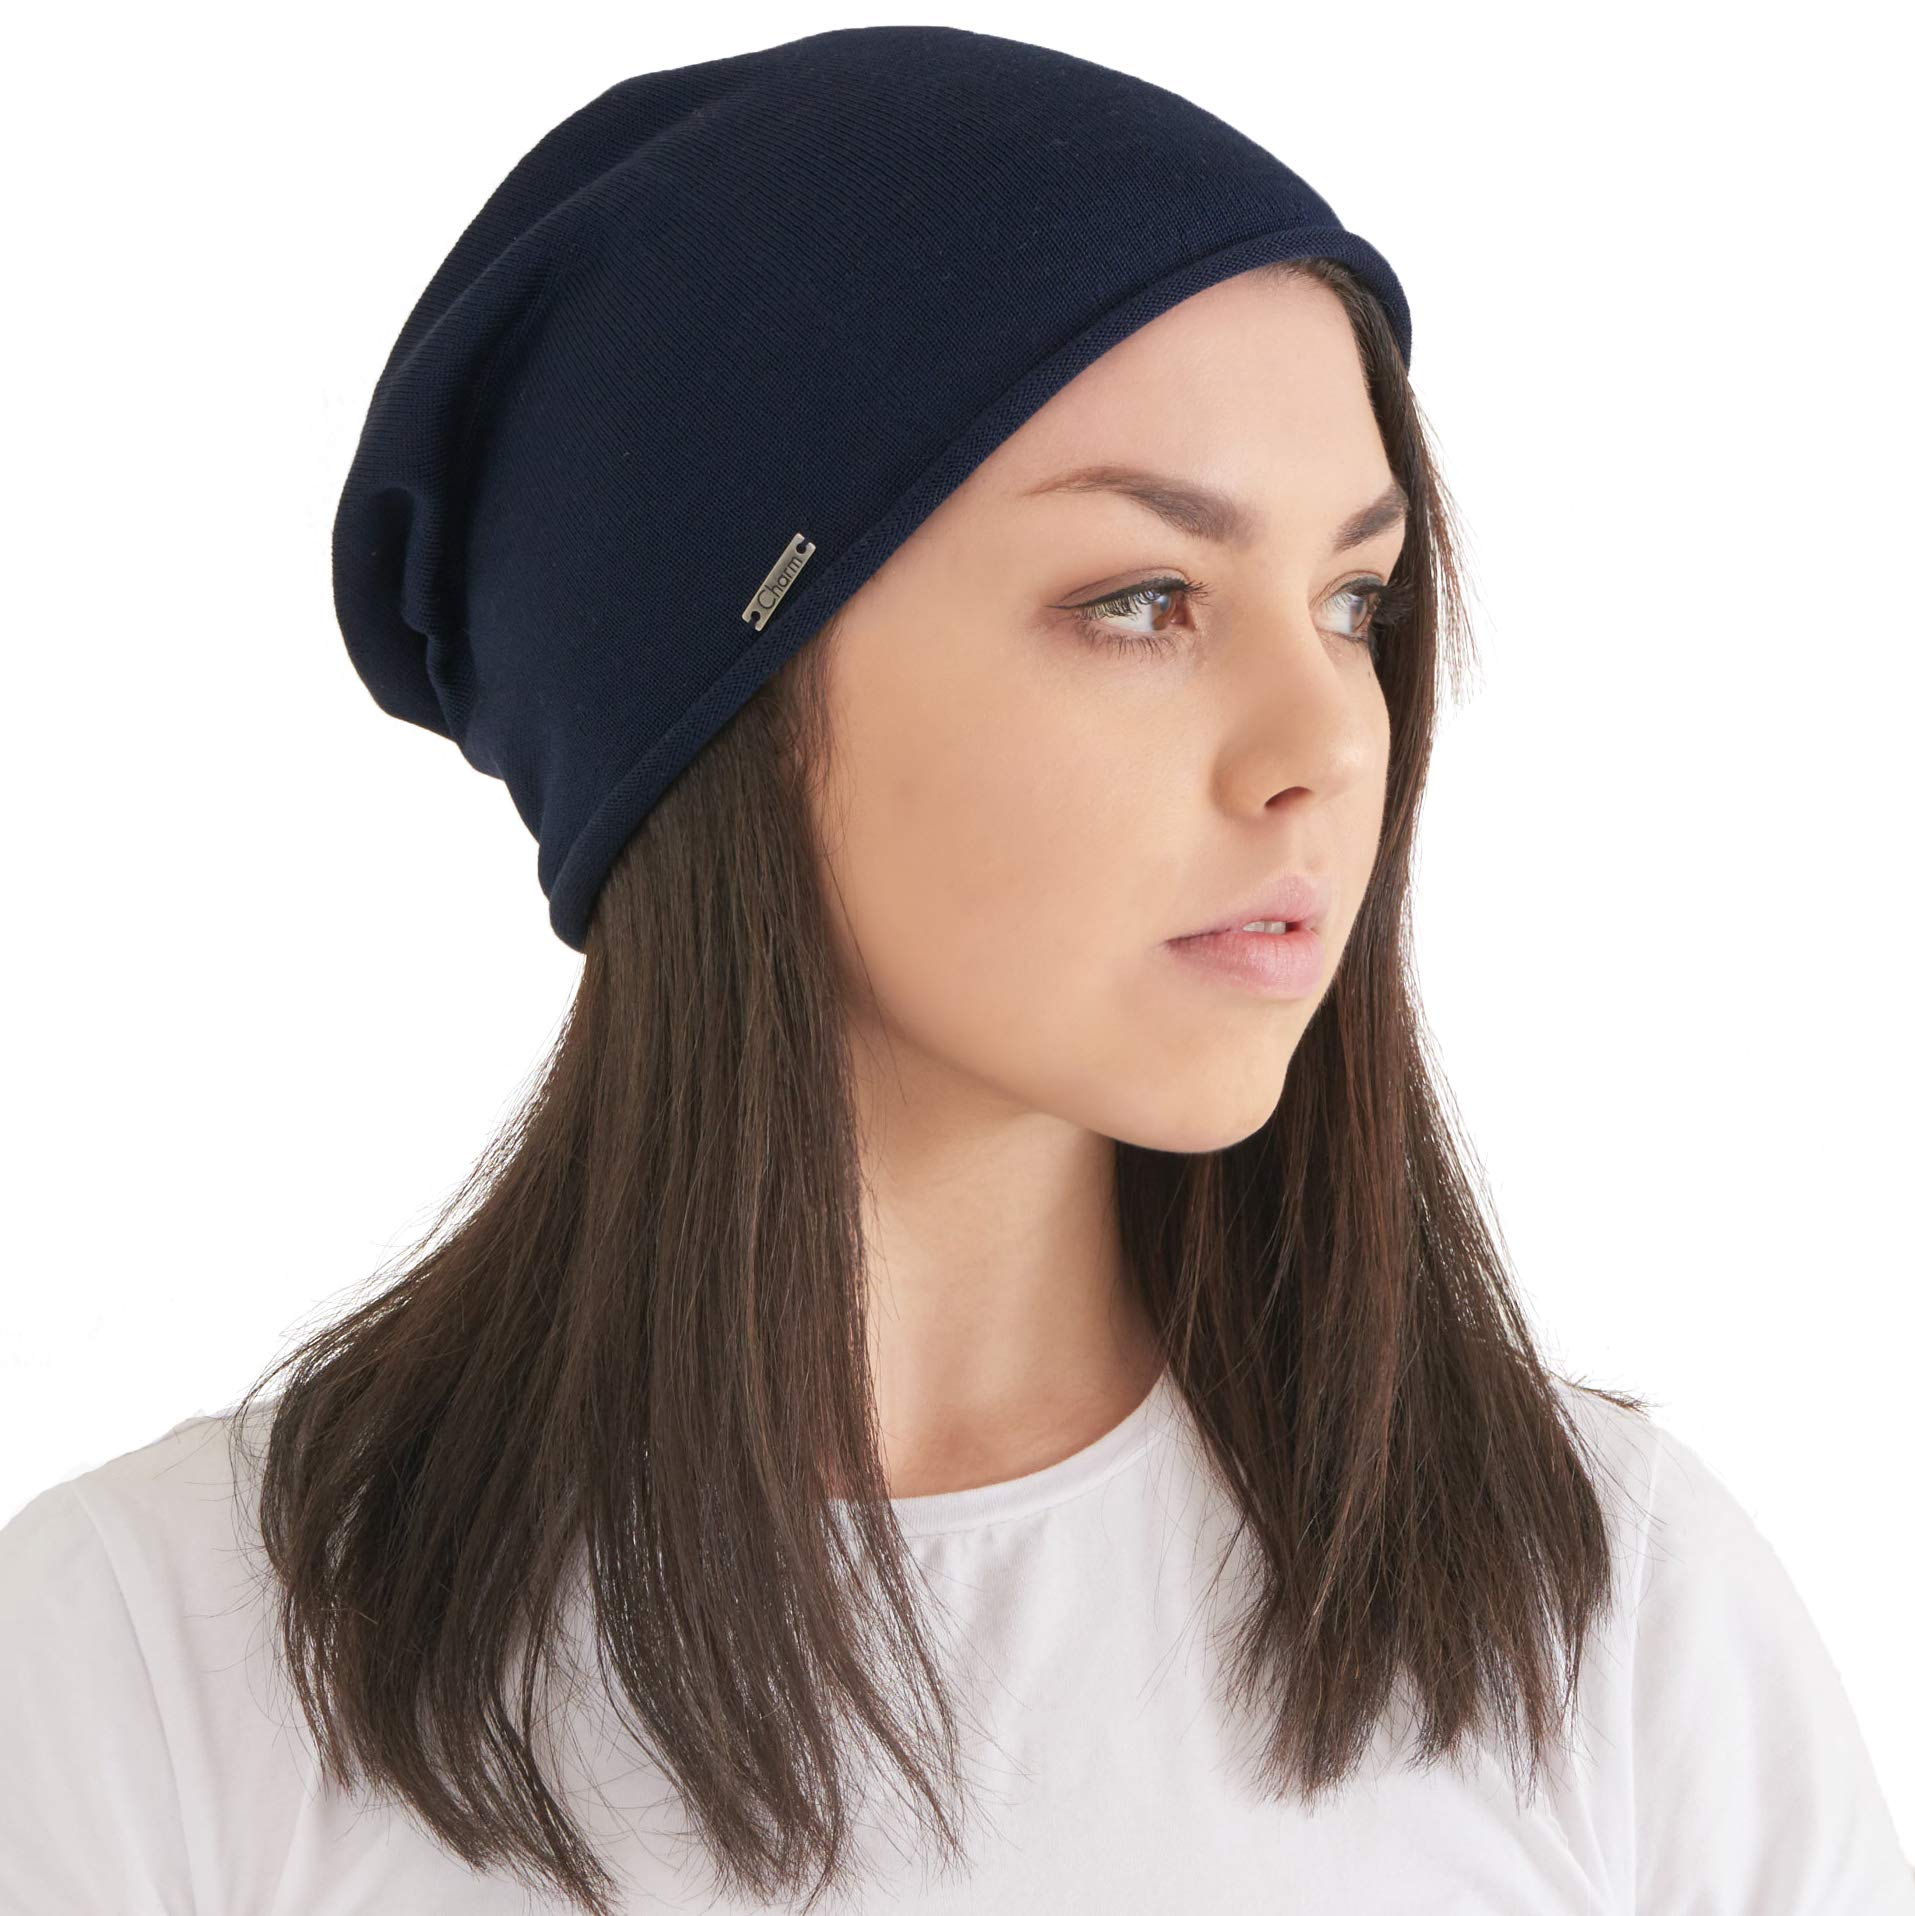 Silk Beanie Hat for Men and Women - Soft Slouchy Mens Beanie Cap Summer Sensitive Skin Womens Chemo Slouch Cap Stretchy Navy L